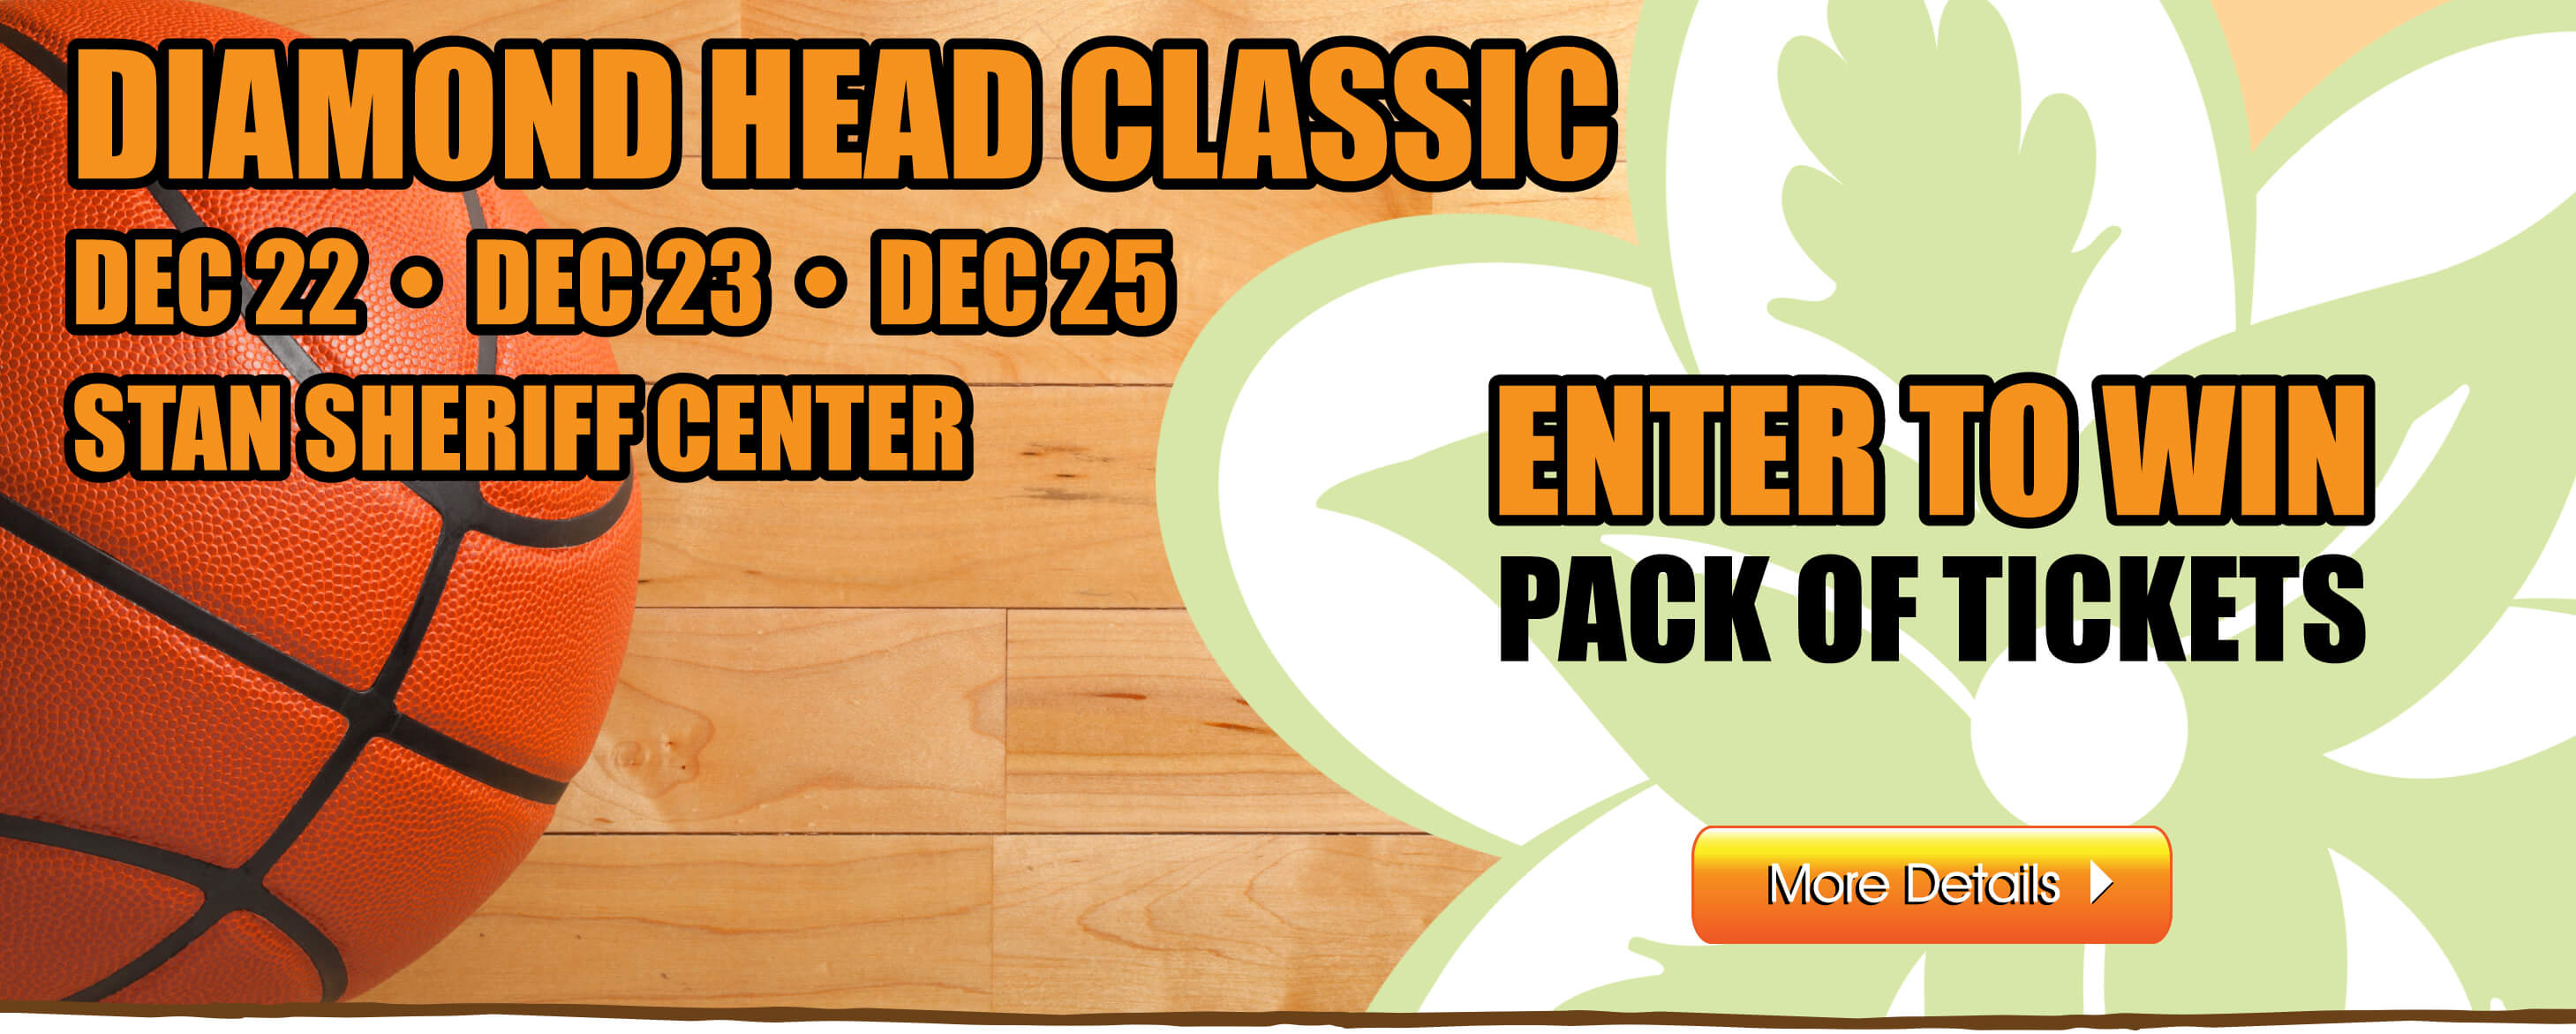 Enter to win a pack of tickets to the Diamond Head Classic basketball games!